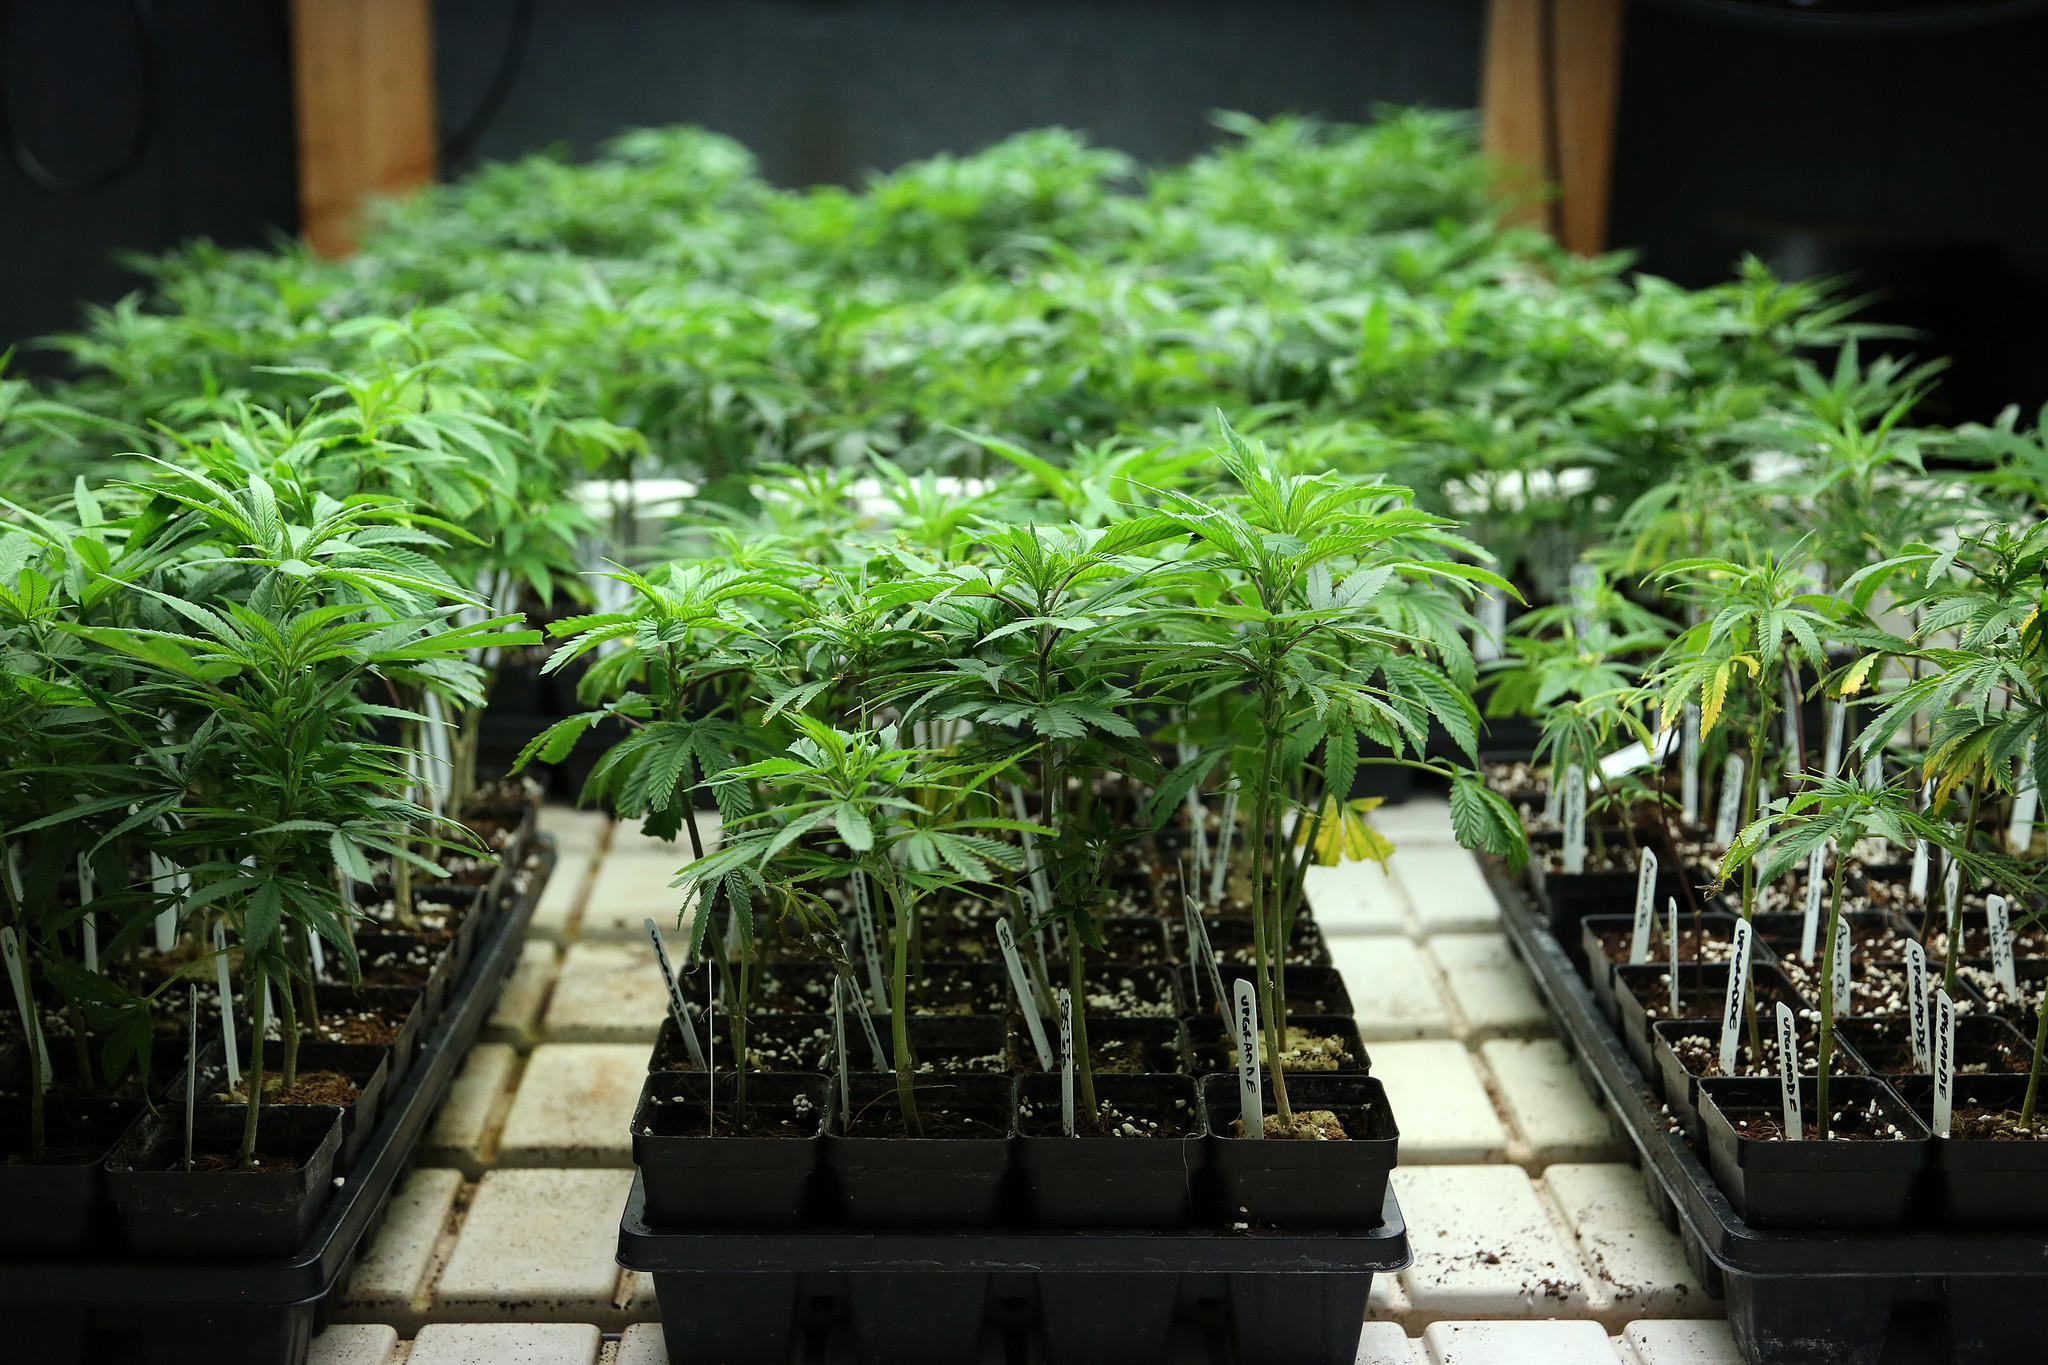 Juvenile medical marijuana plants grow under artificial light Thursday, May 16, 2013 at the Gaia Plant-Based Medicine grow operation in Denver.